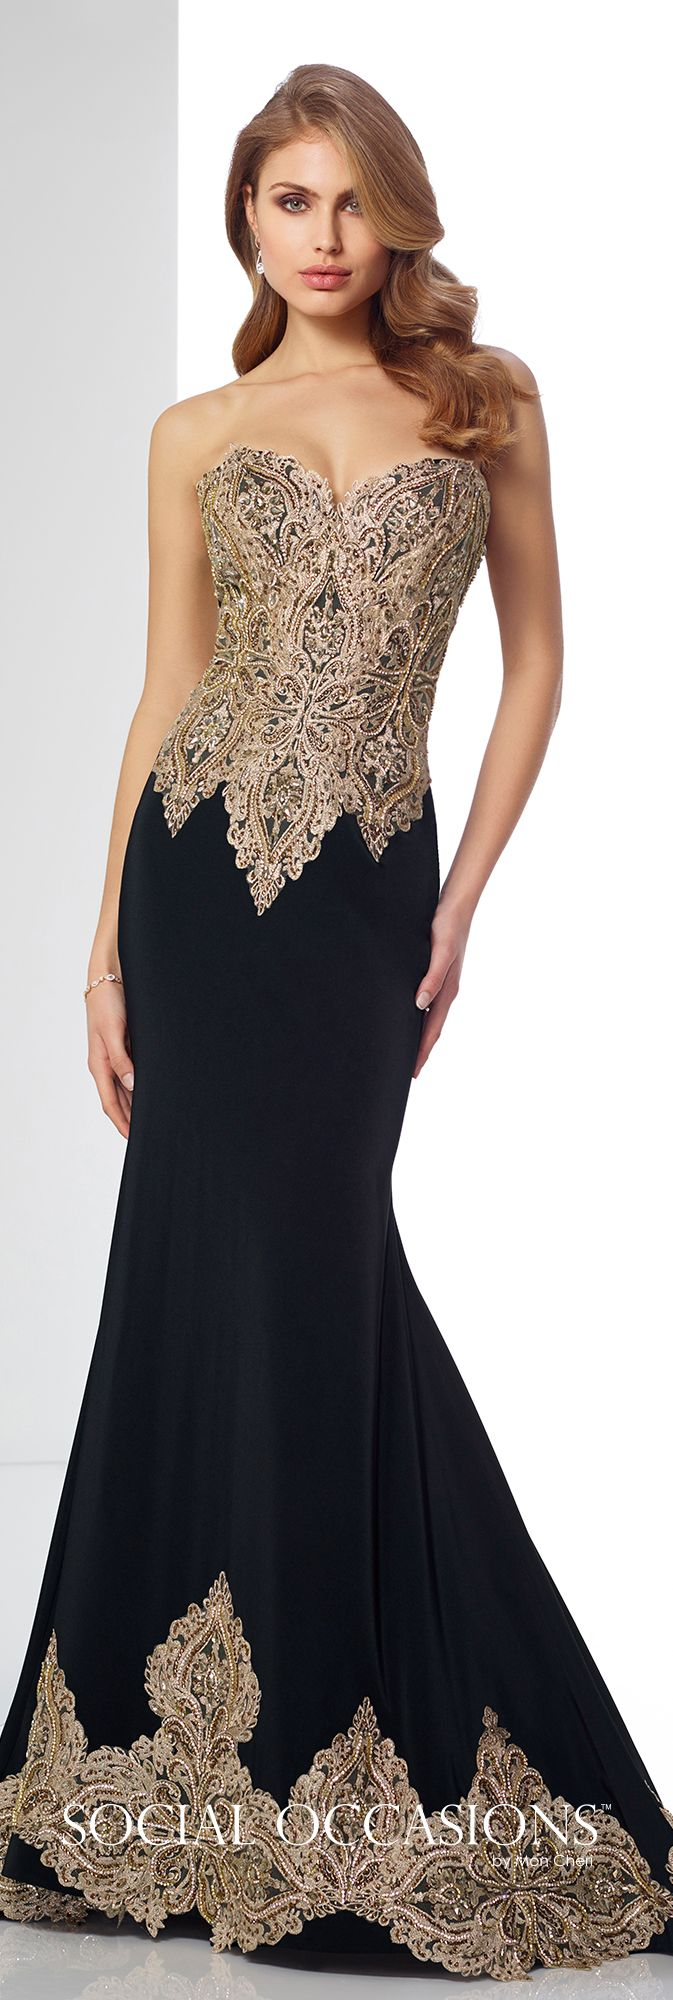 25 best ideas about formal evening dresses on pinterest for How much are mon cheri wedding dresses